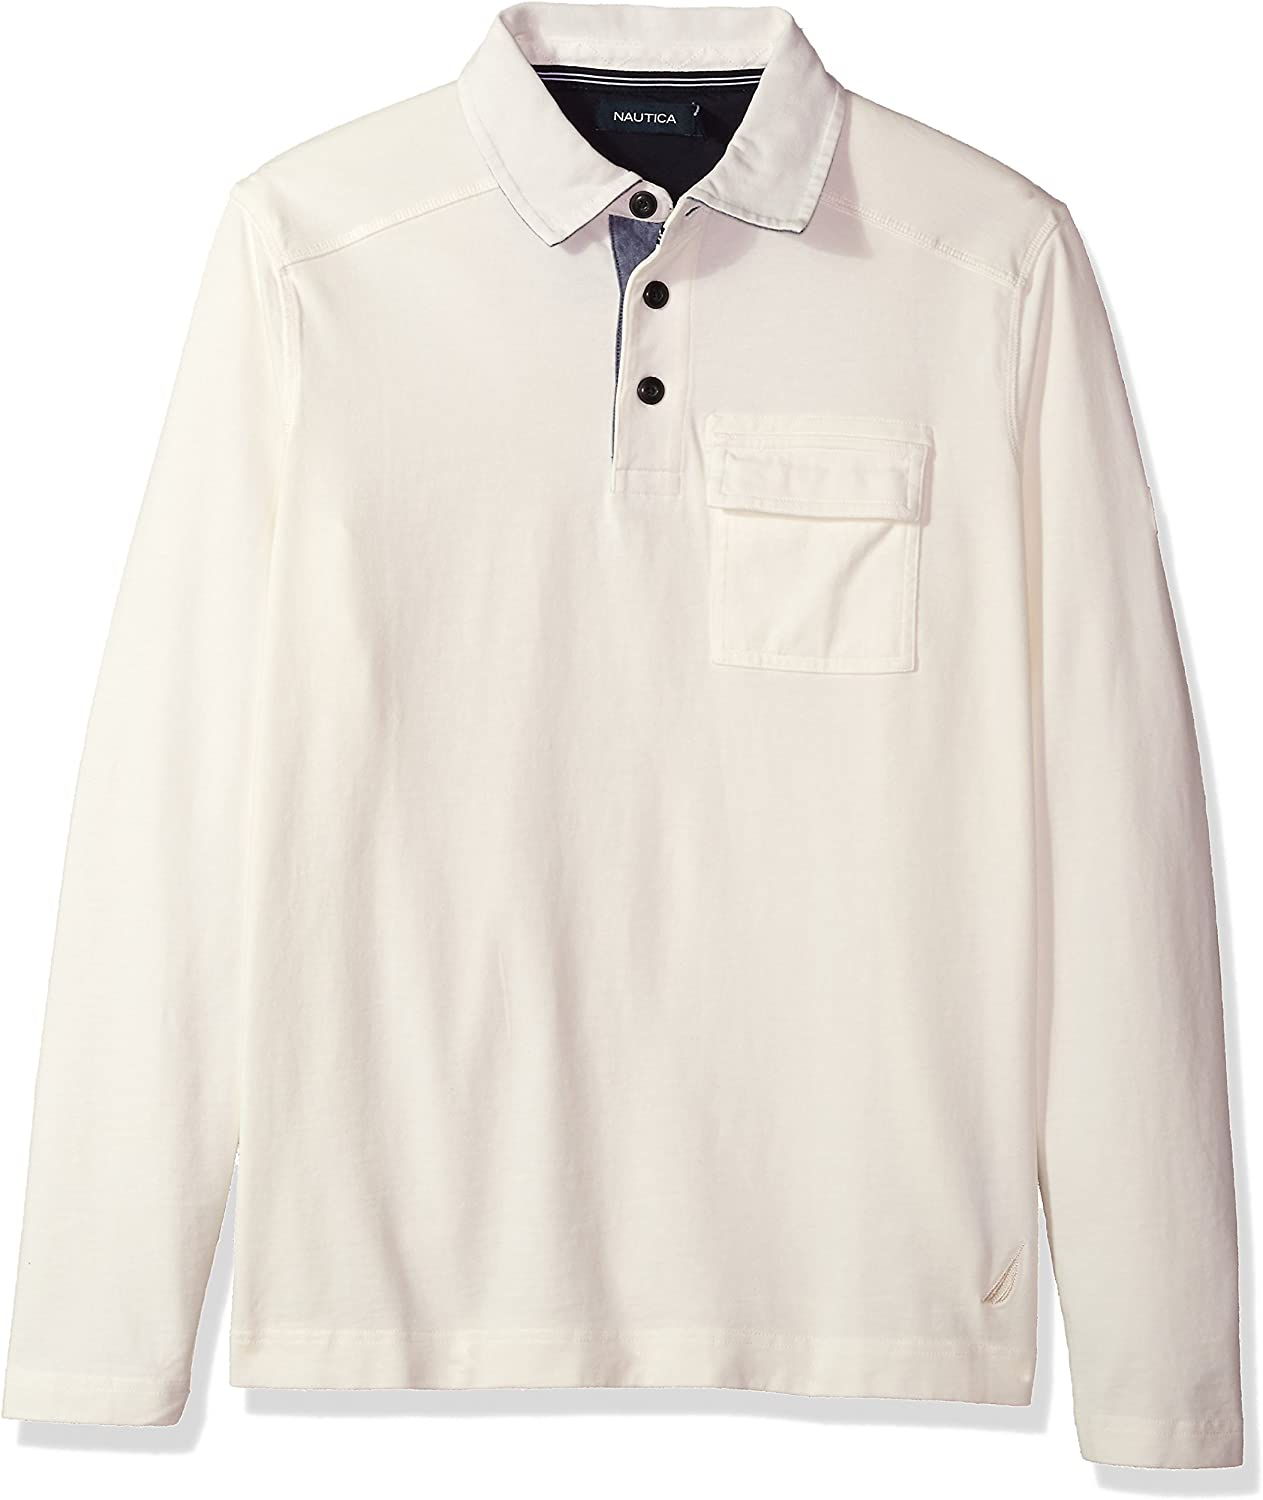 Nautica Long Sleeve Heavy Weight Jersey Polo Shirt with Chest Pocket